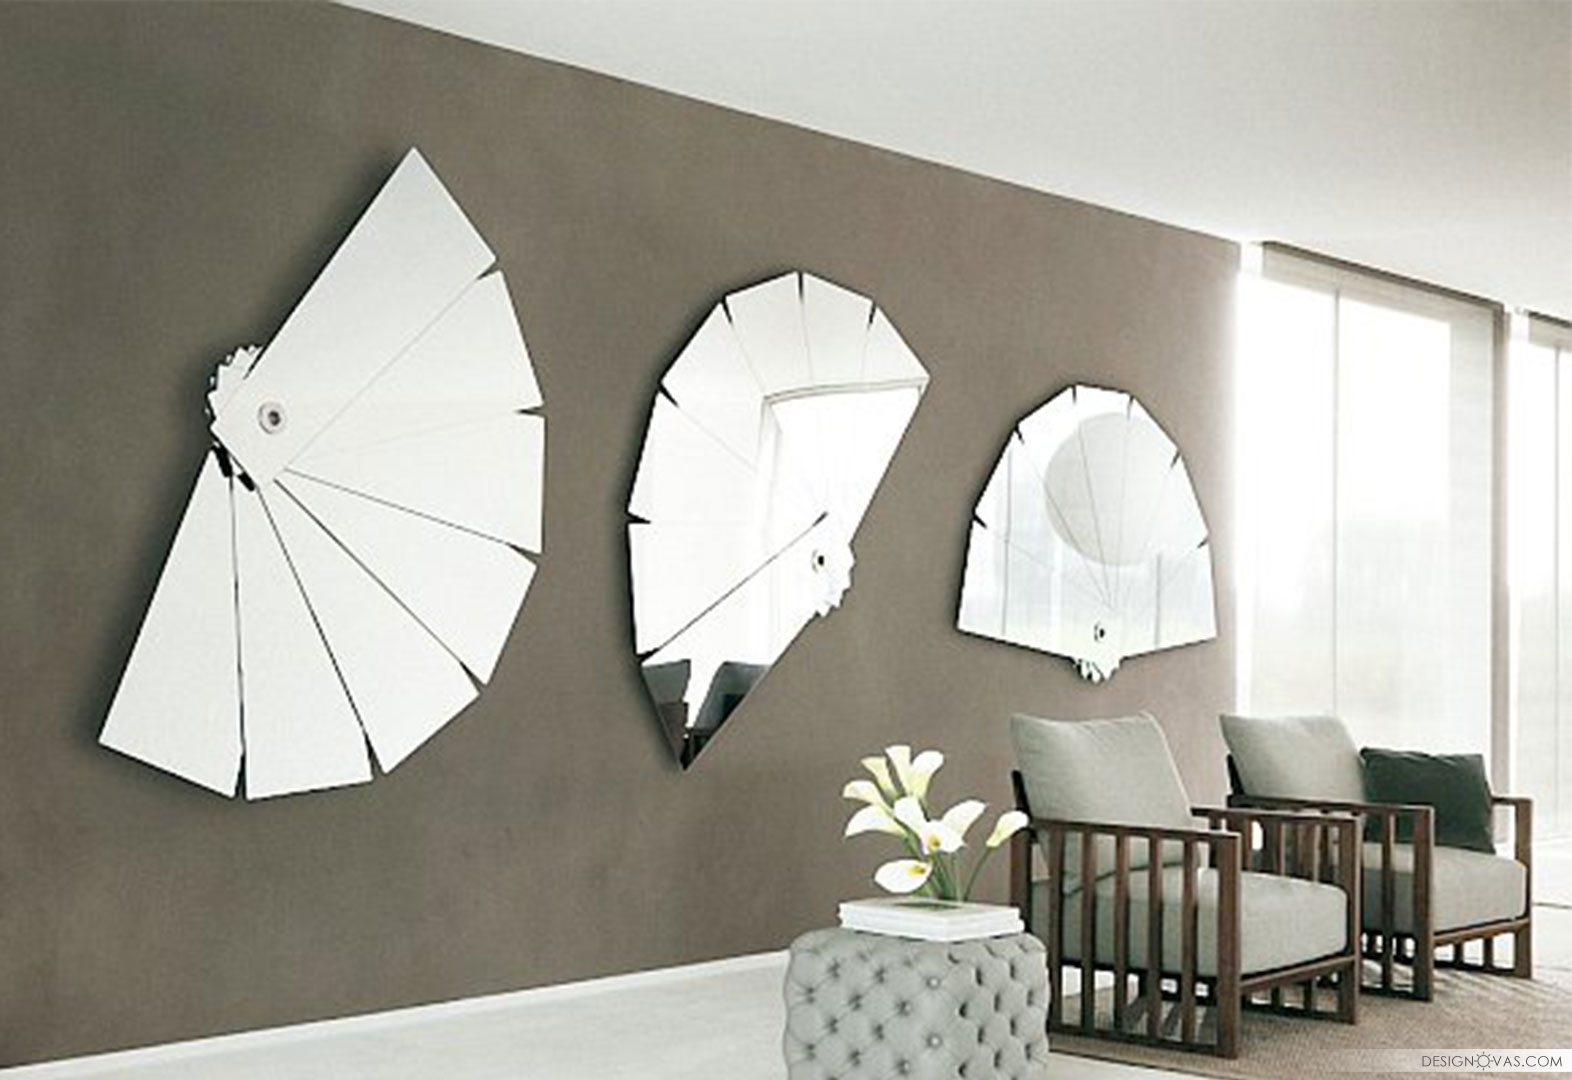 Large Mirrors for Wall